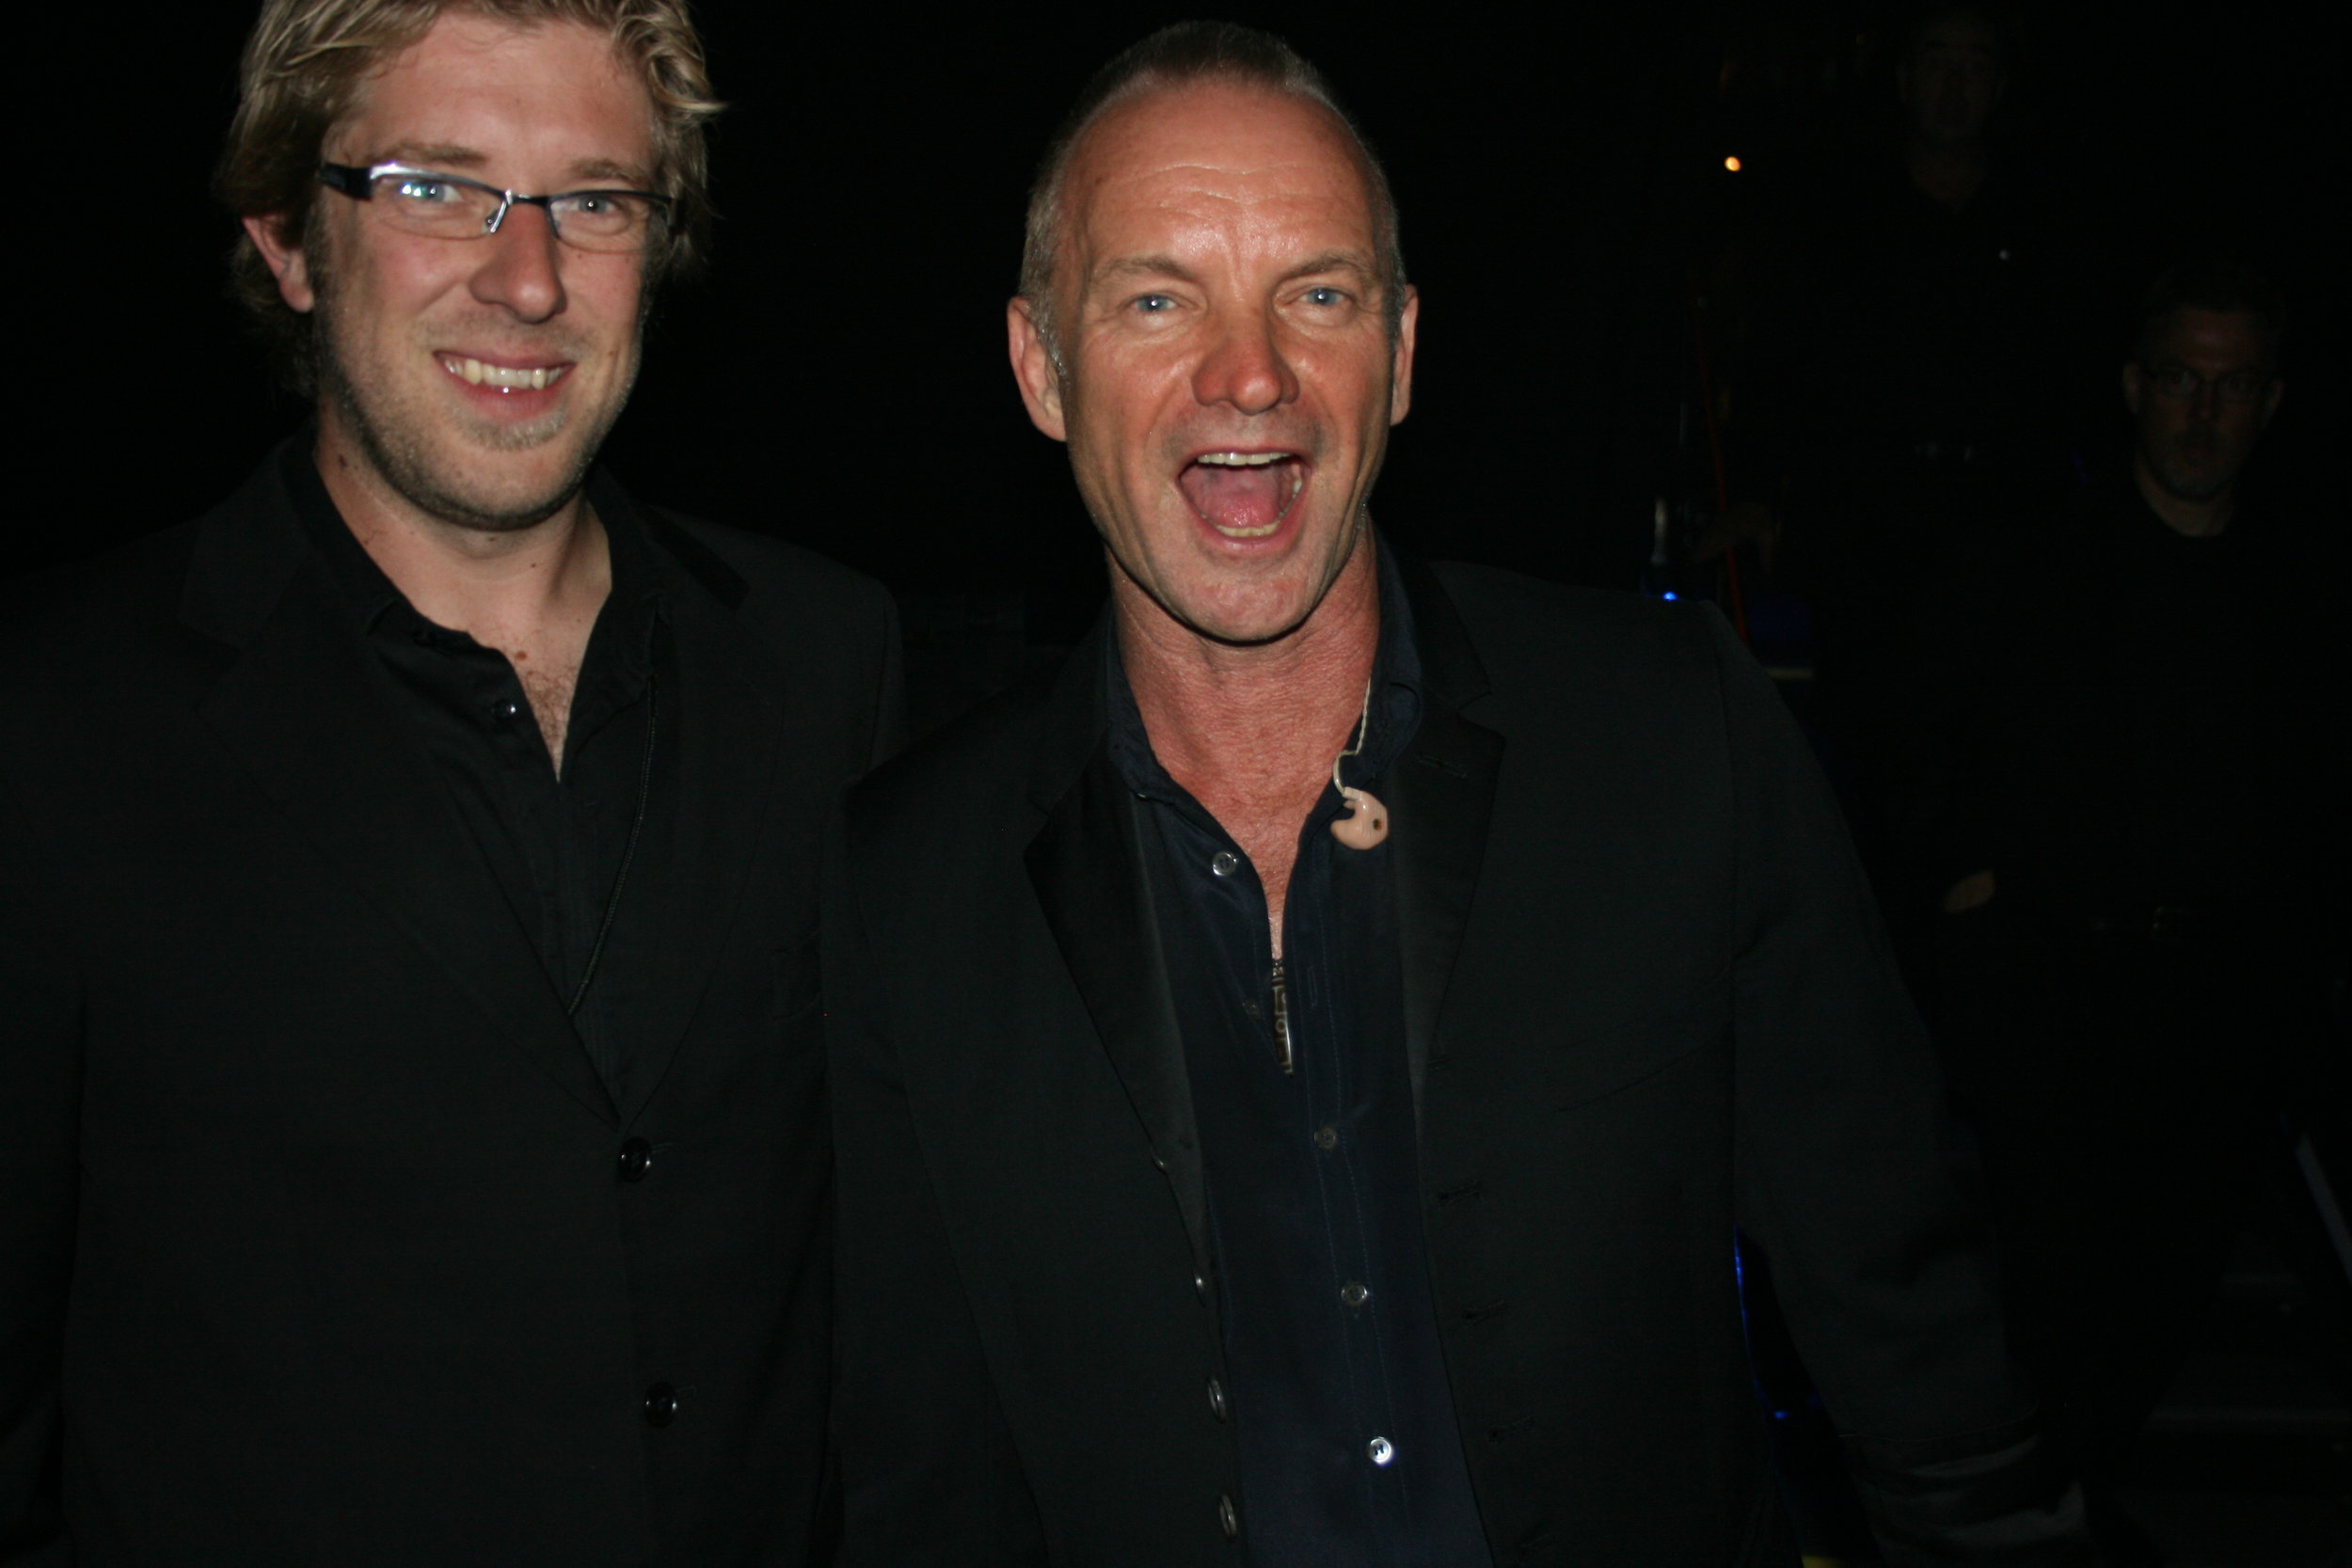 Me and Sting - I think I told him a joke...